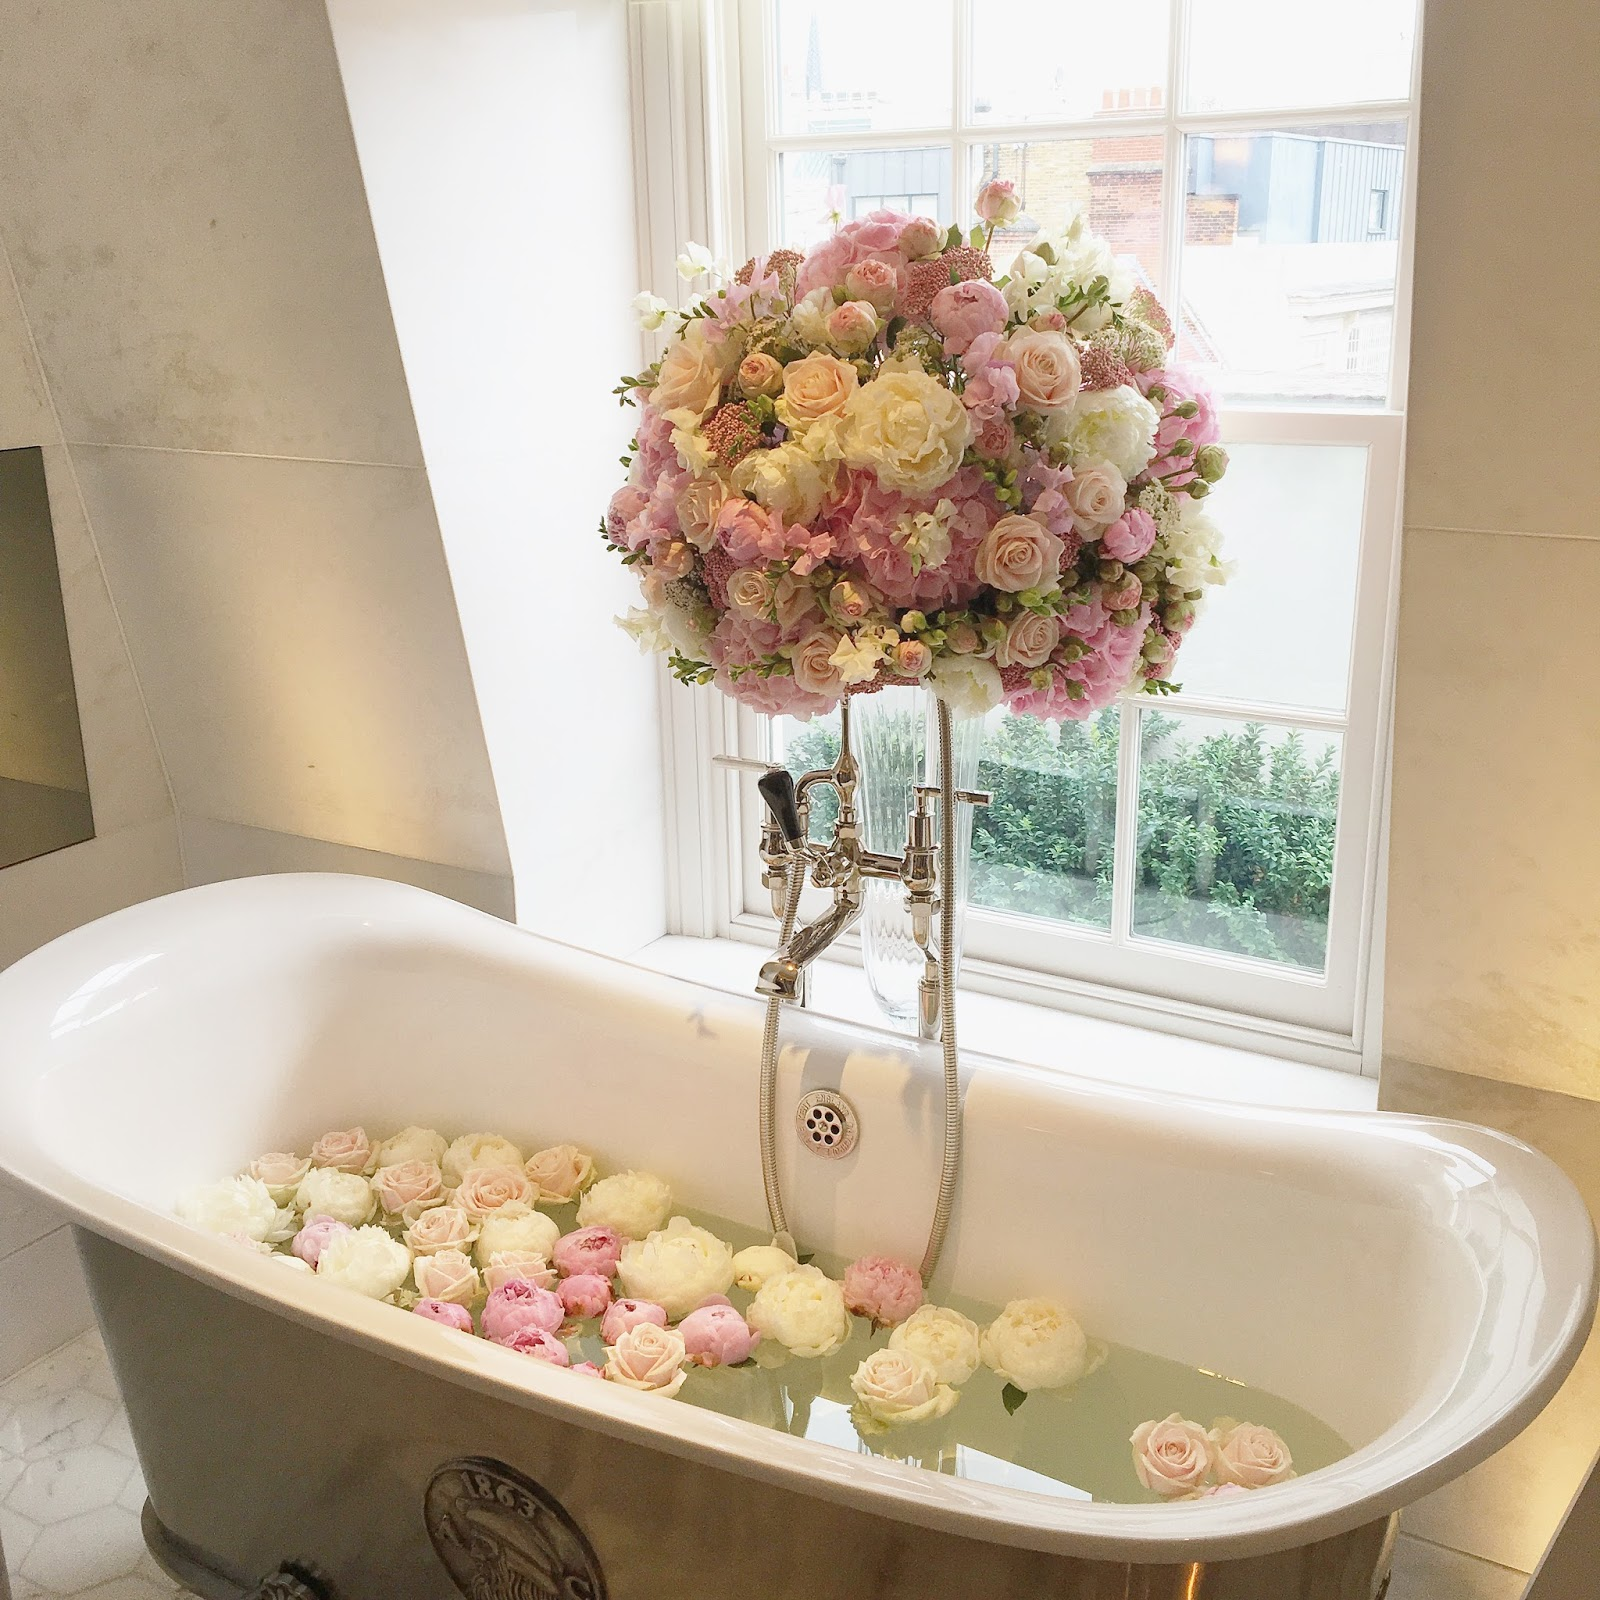 bath tub filled with flowers